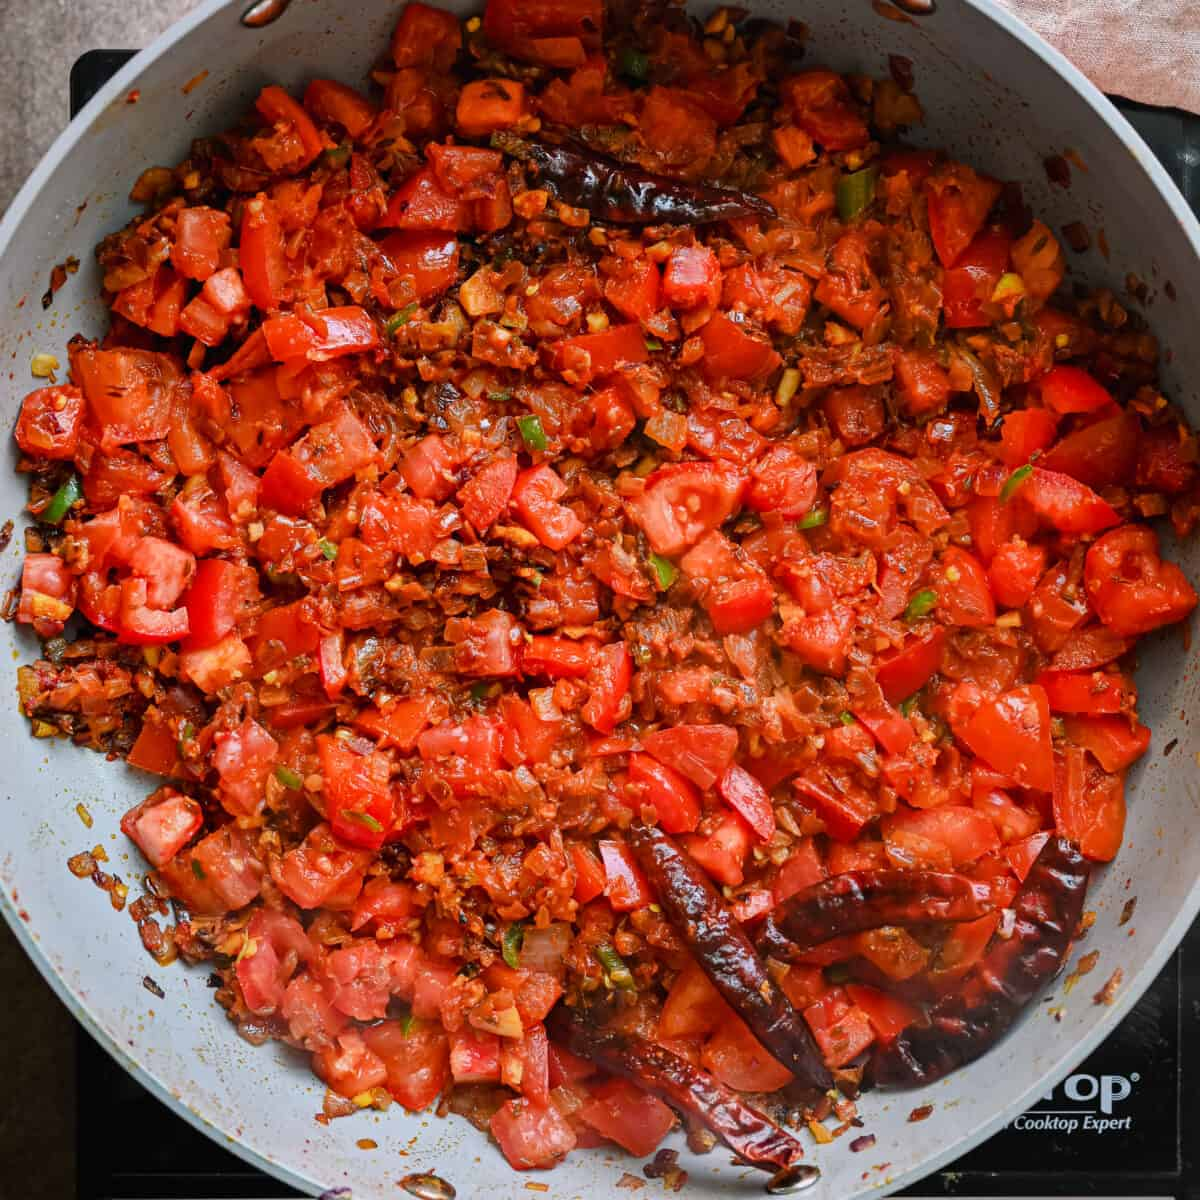 cooked tomatoes on top of masala in a saute pan